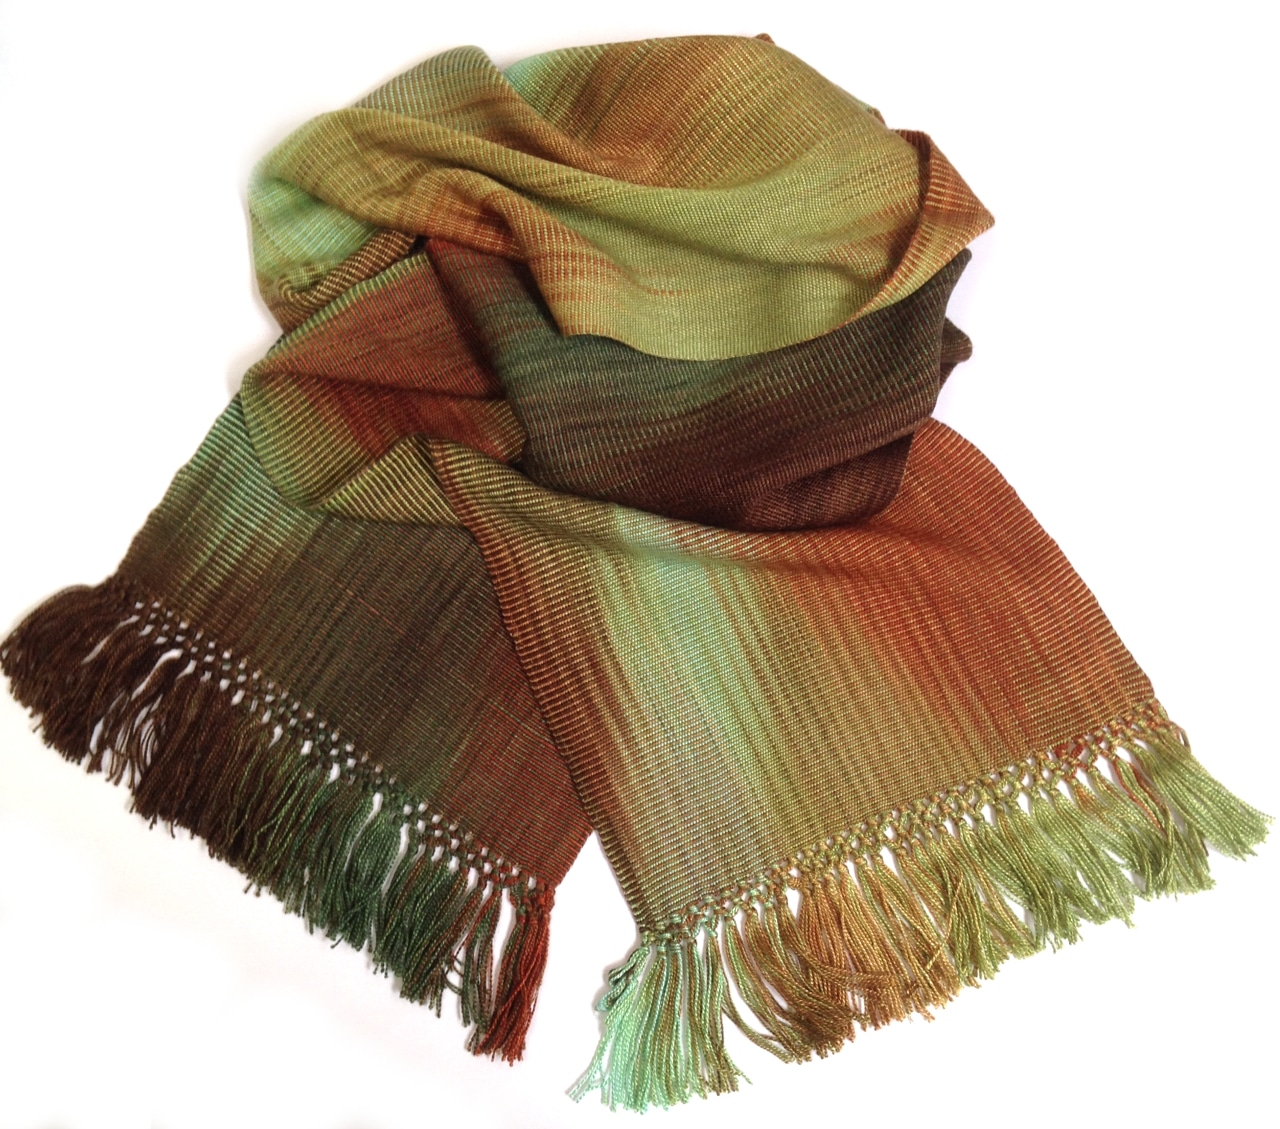 Turquoise, Brick, Green, Brown - Lightweight Bamboo Handwoven Scarf 8 x 68